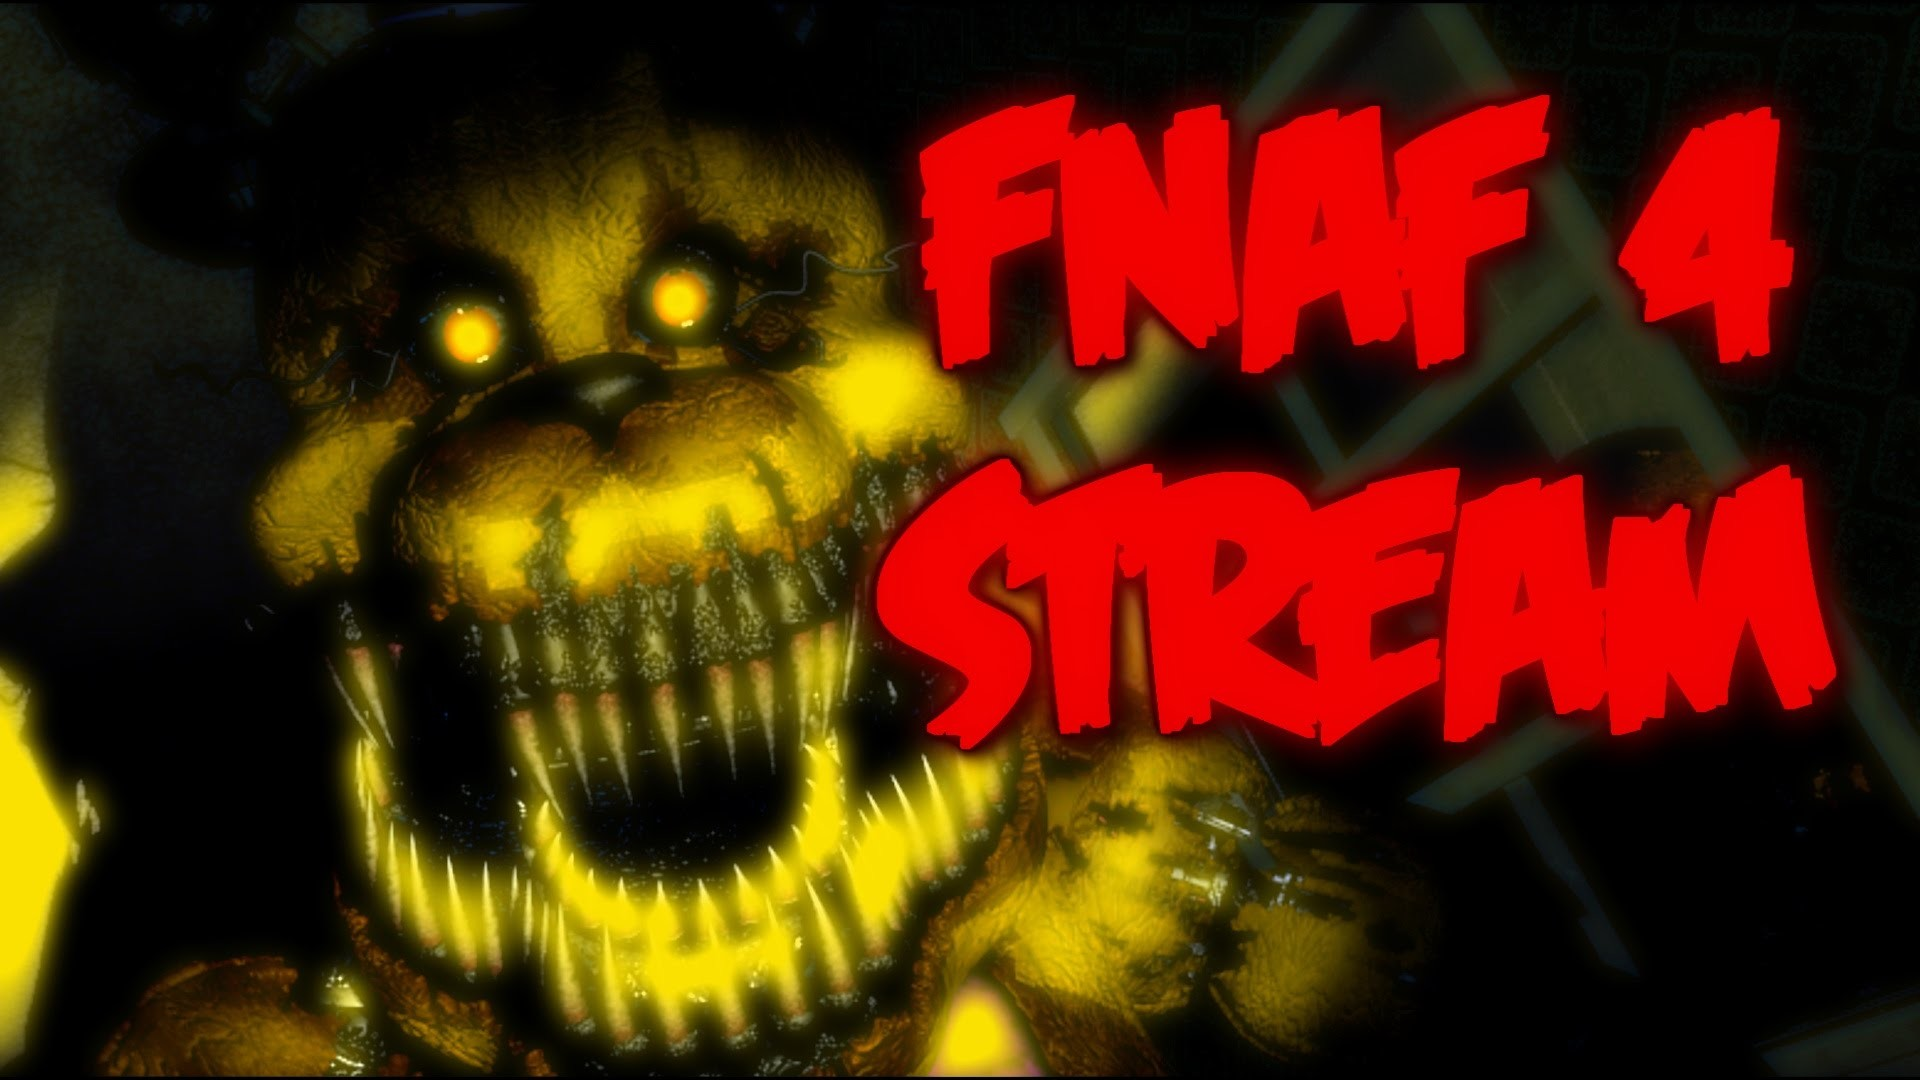 1920x1080 FNAF 4 HALLOWEEN LIVESTREAM! | Five Nights at Freddy's 4 Announcement